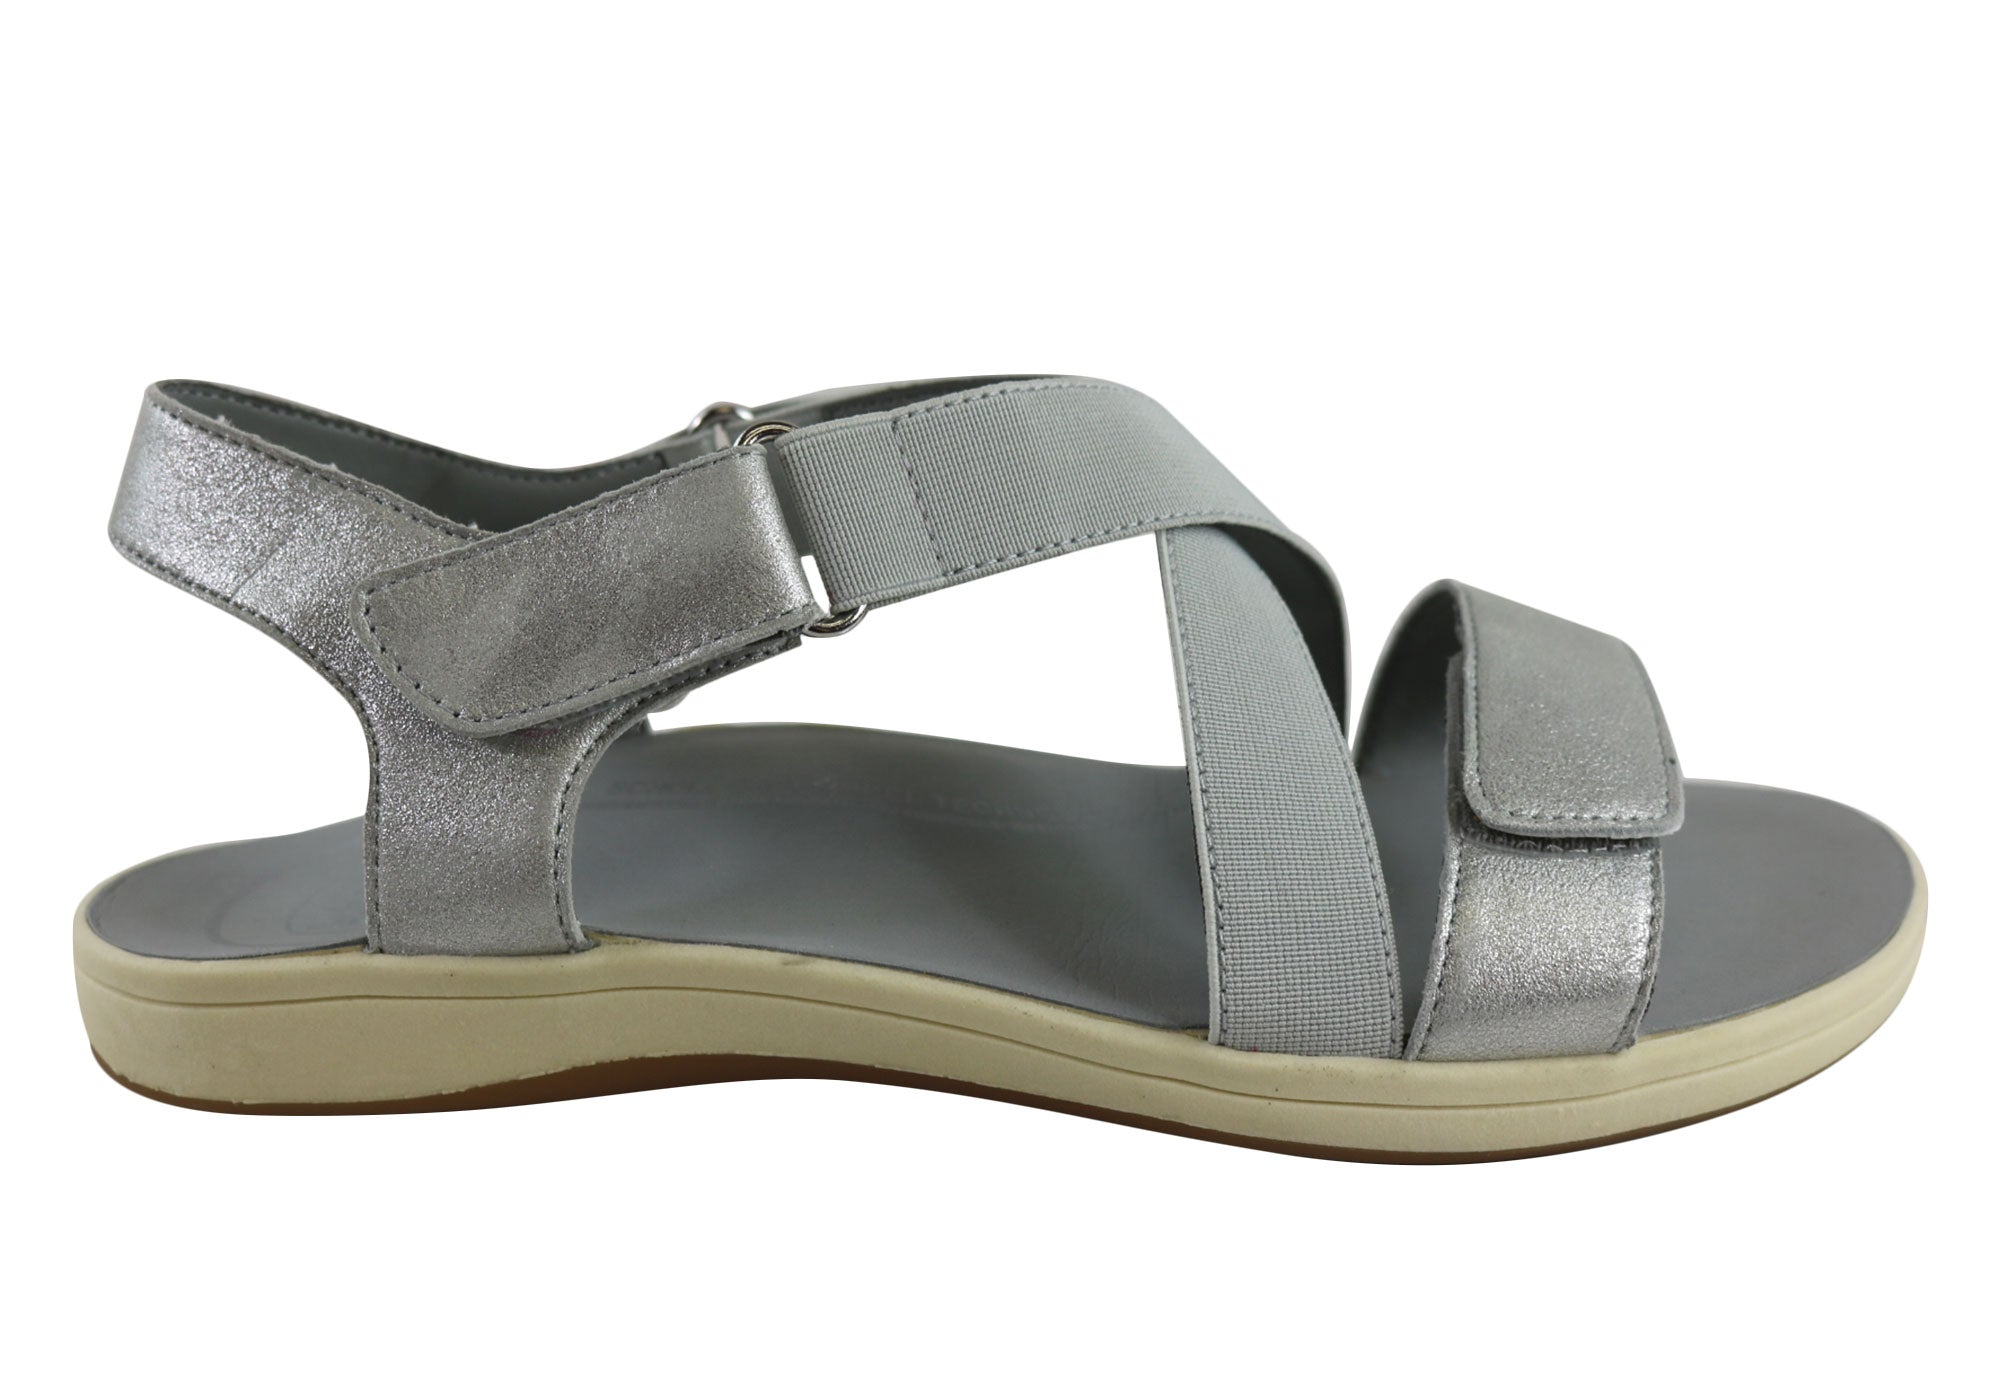 itm comforter size shoes sandals strappy wedge low comfort womens ladies summer wedges mules